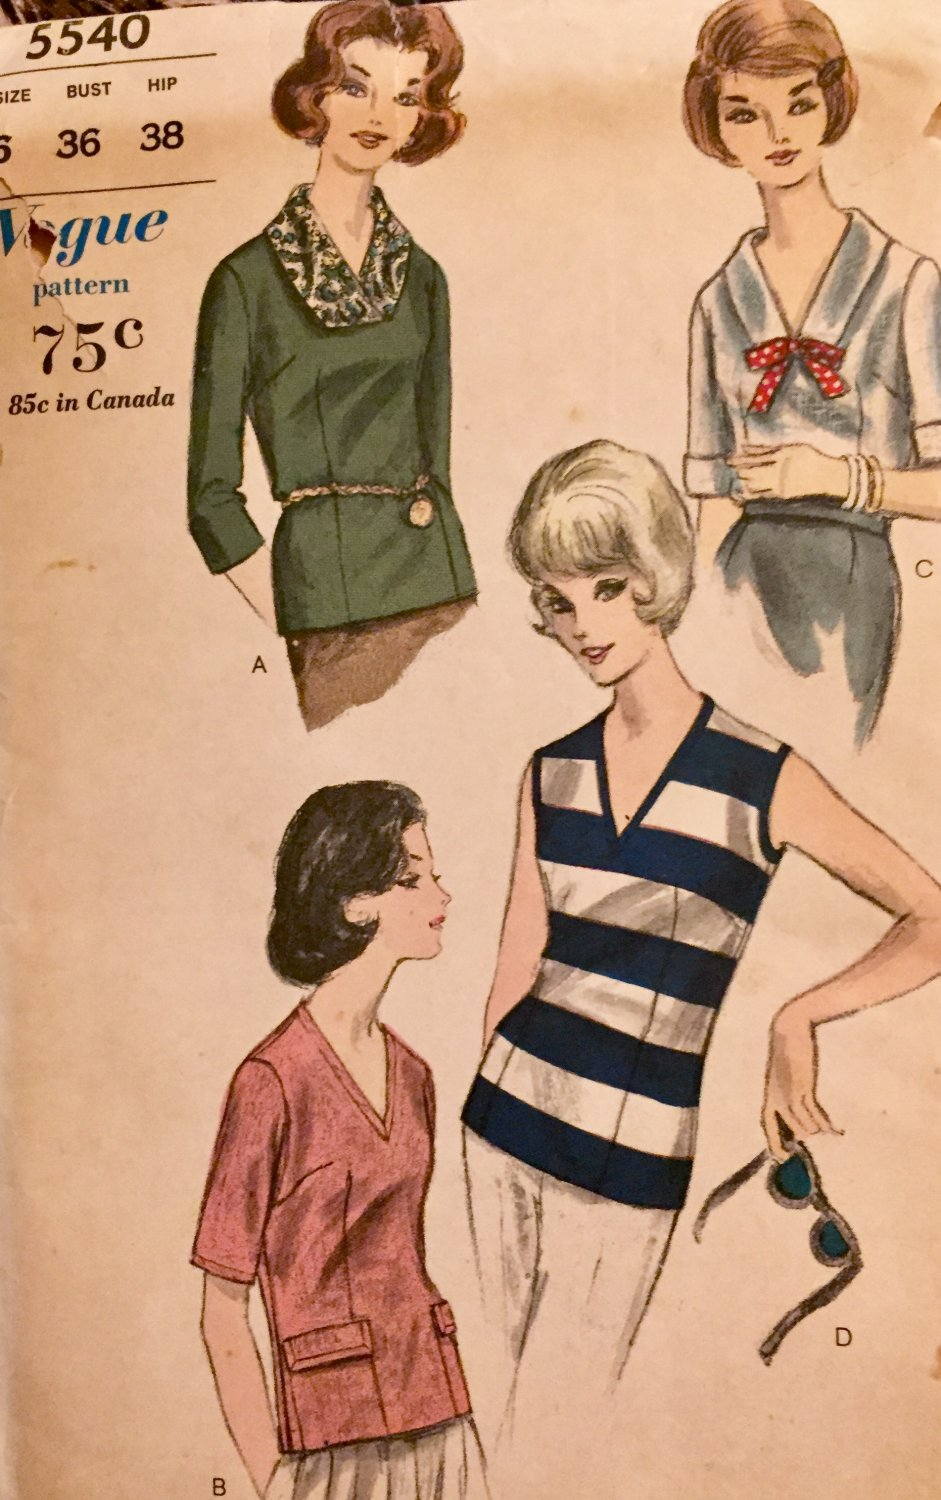 Vogue 5540 Blouse and scarf Sewing pattern size 16 Bust 36 Hip 38